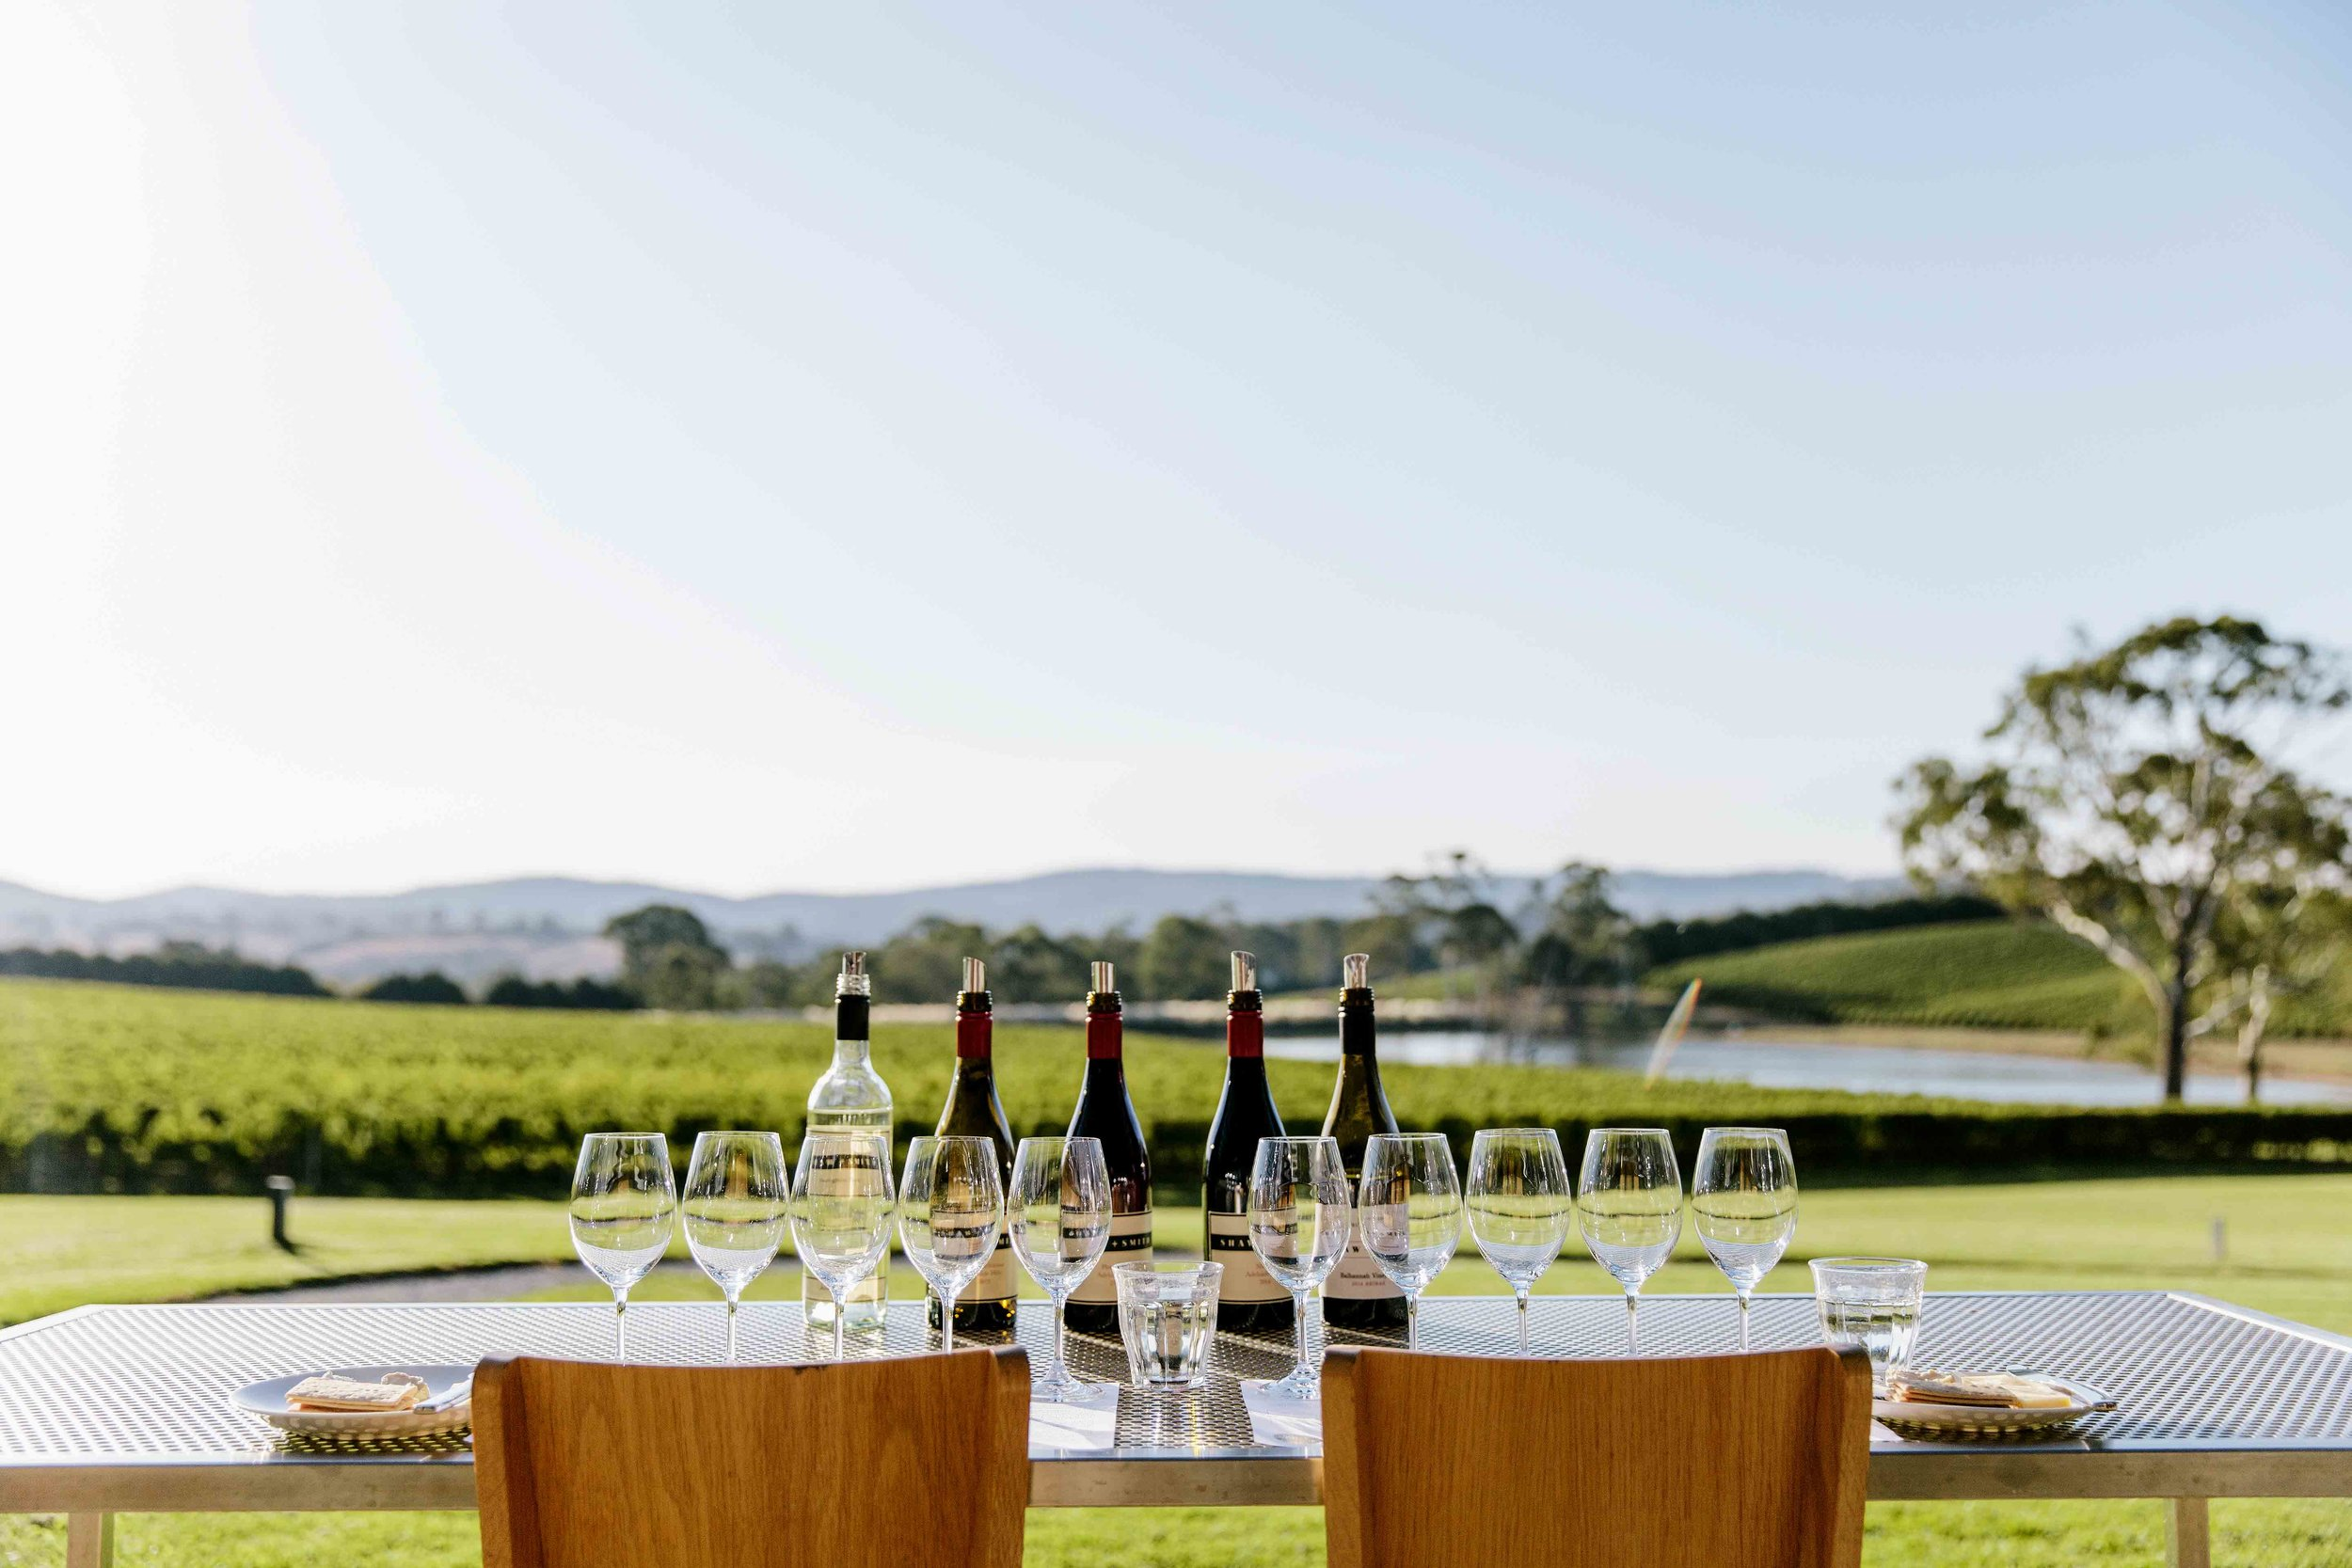 Seated comfortably in the Tasting Room, peer out through the floor-to-ceiling window to take in the breathtaking view out over the Shaw + Smith vineyard and beyond to the Adelaide Hills.